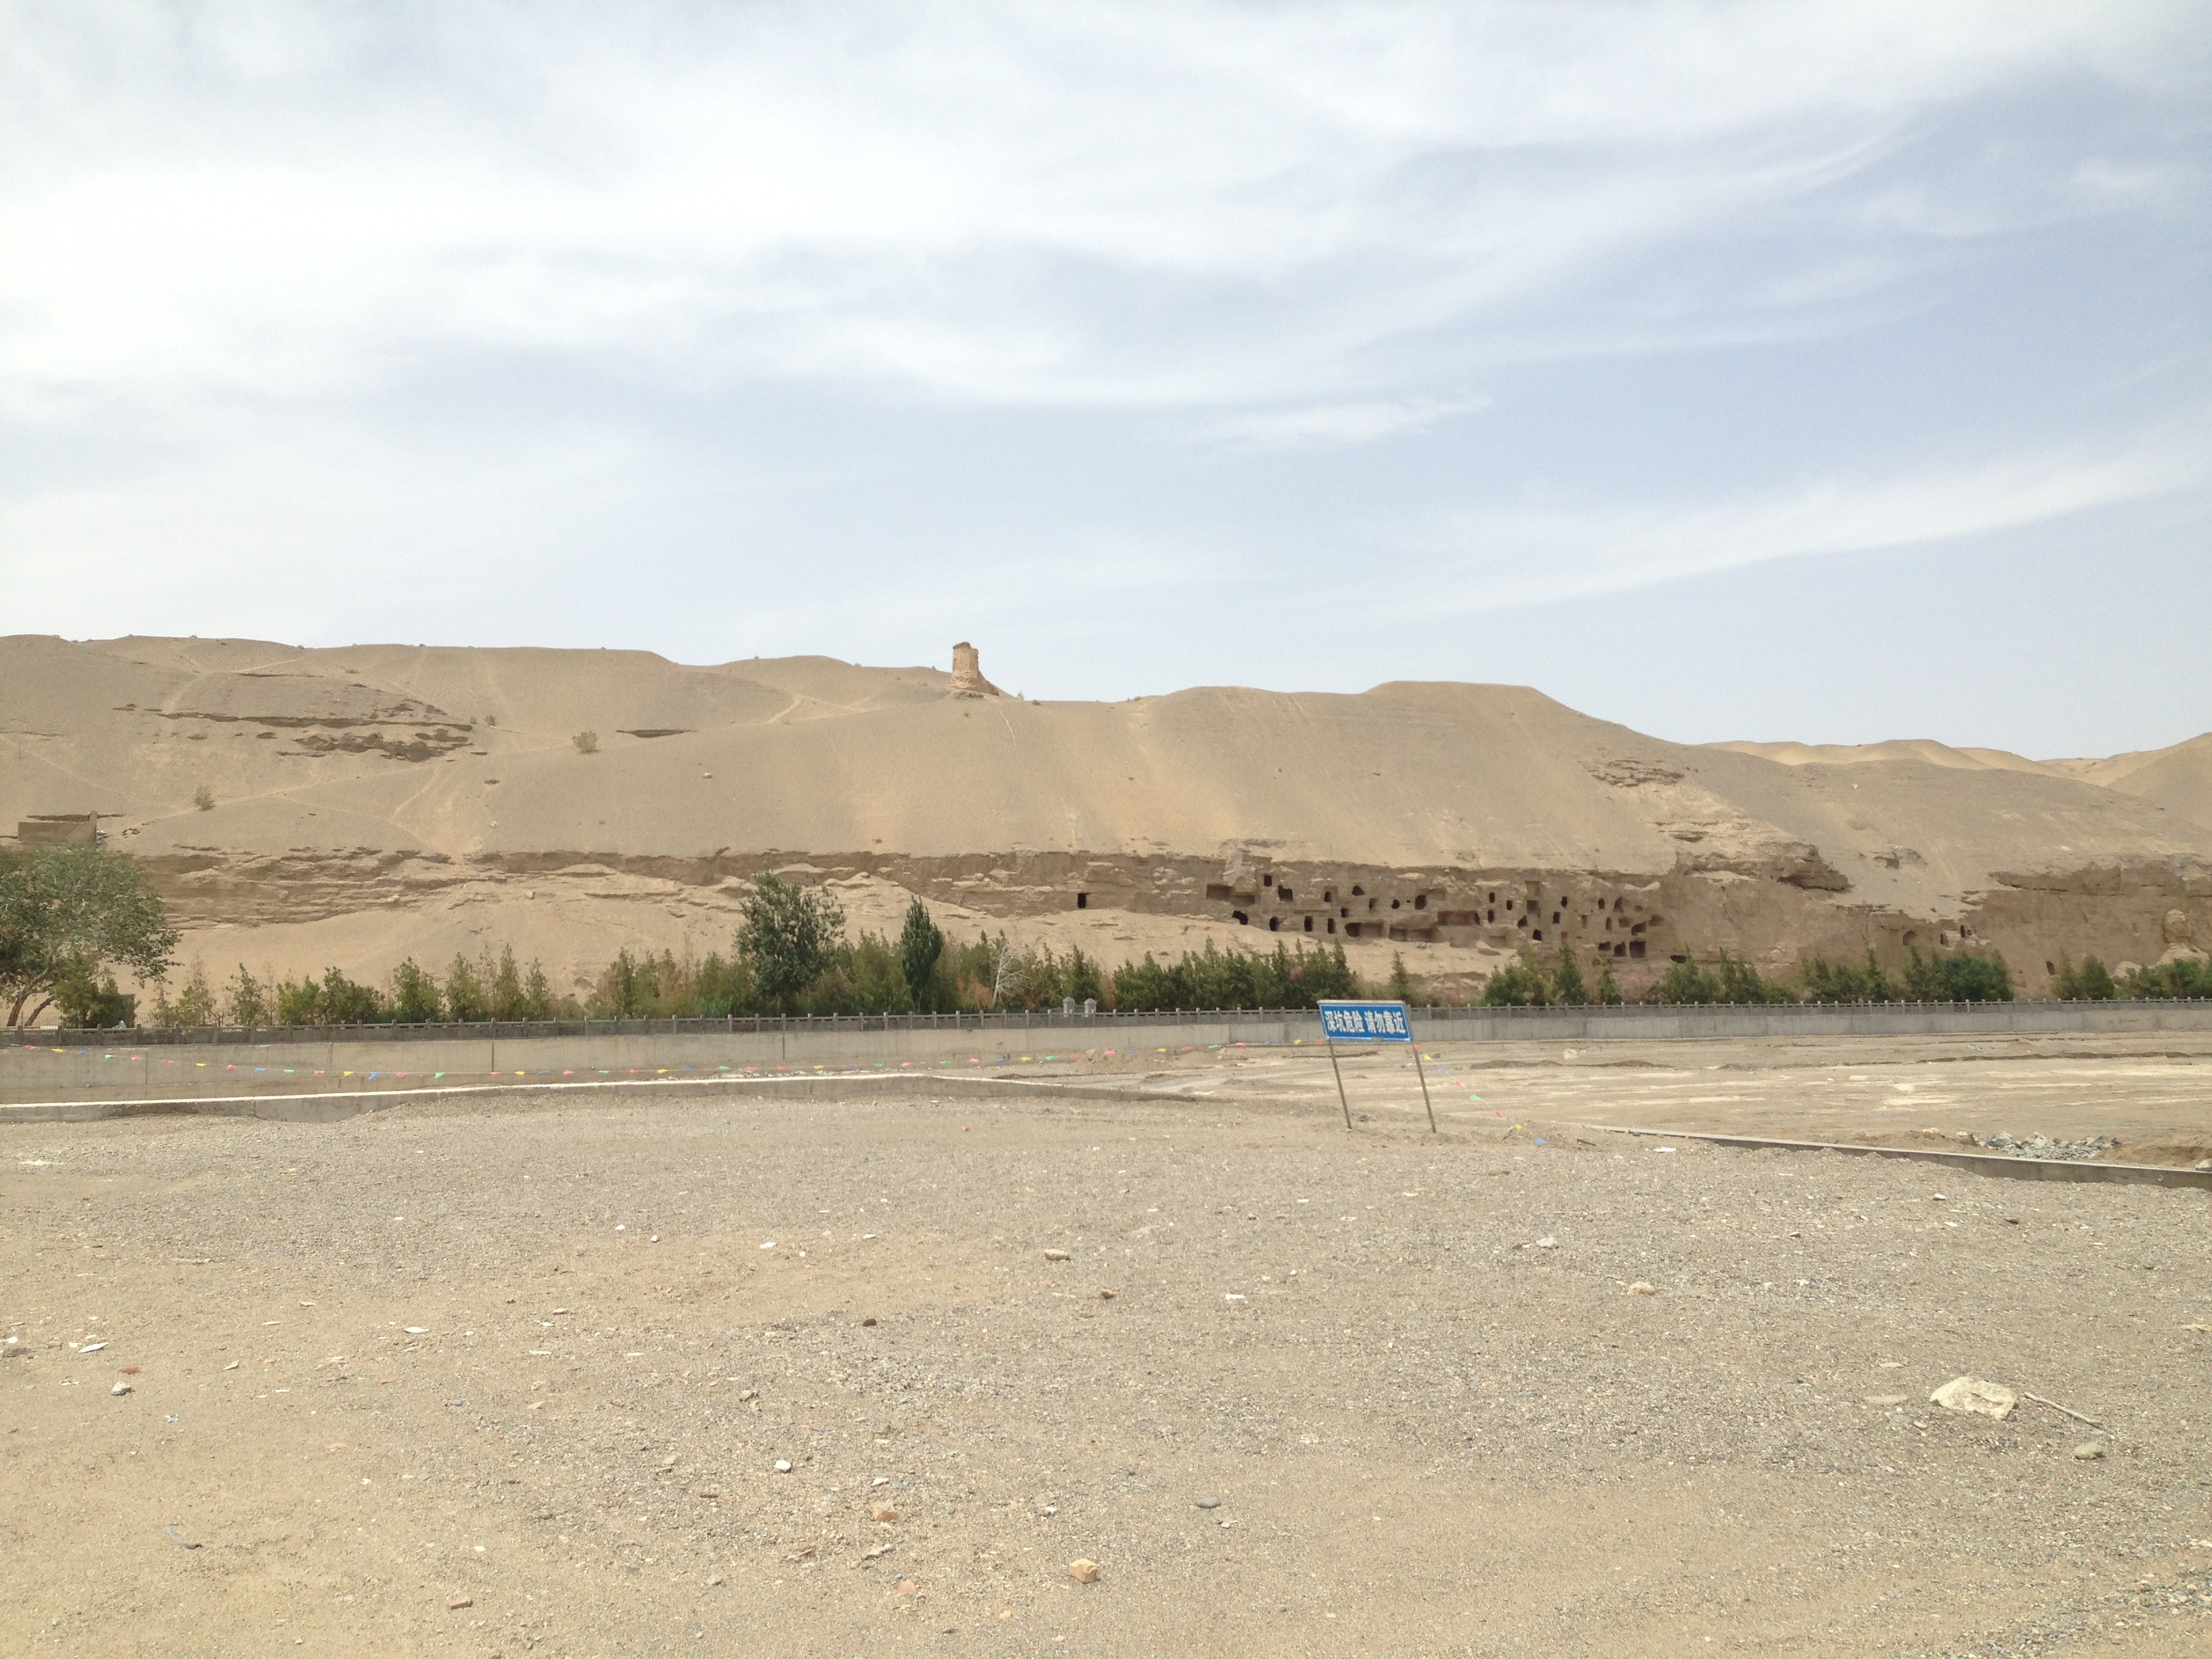 Sandstone cliffs being excavated near Mogao Grottoes in Dunhuang, June 9